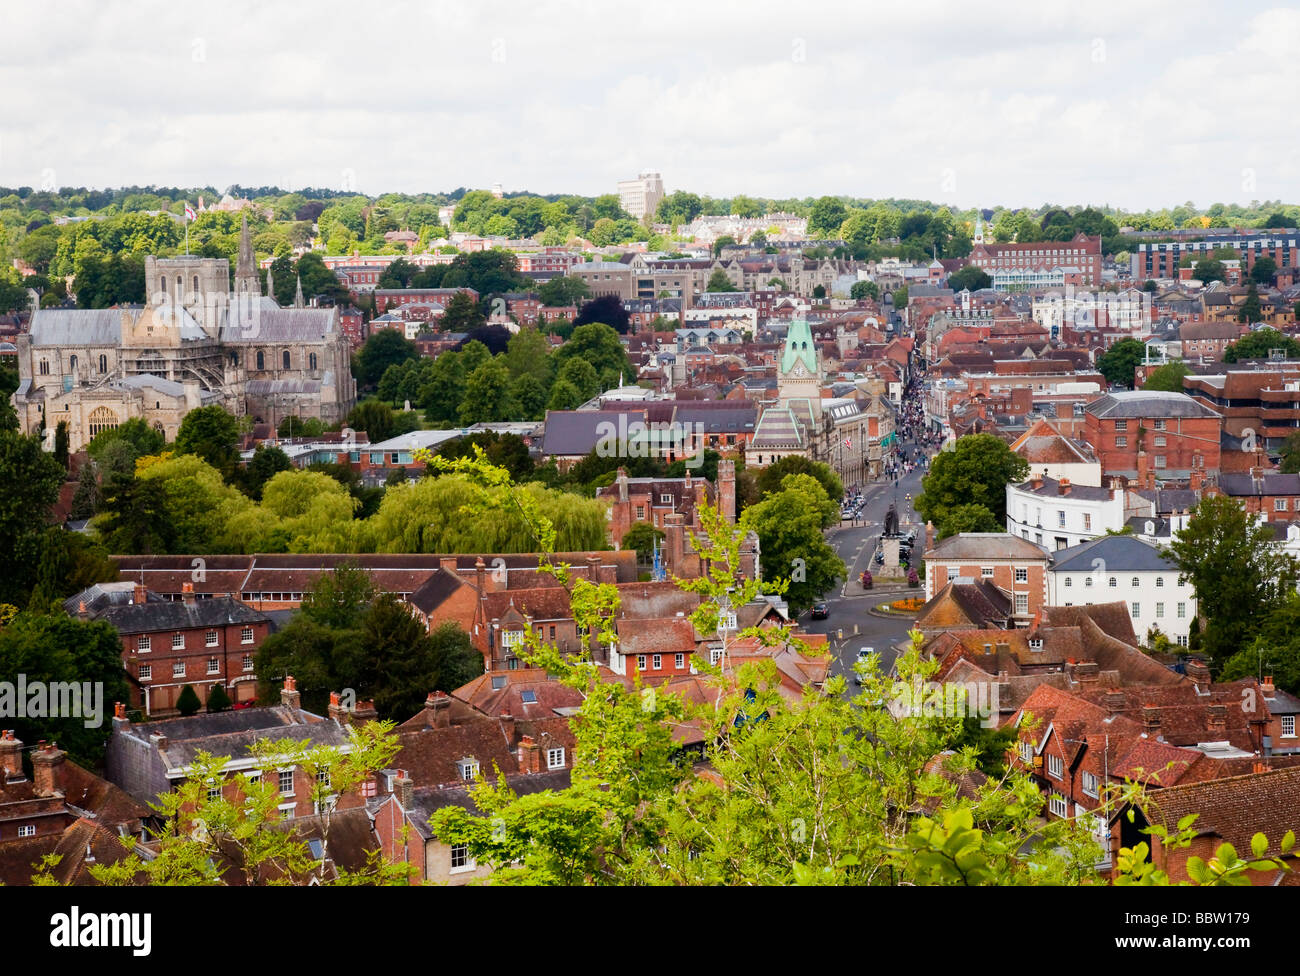 Viewpoint overlooking Winchester City, Hampshire - Stock Image